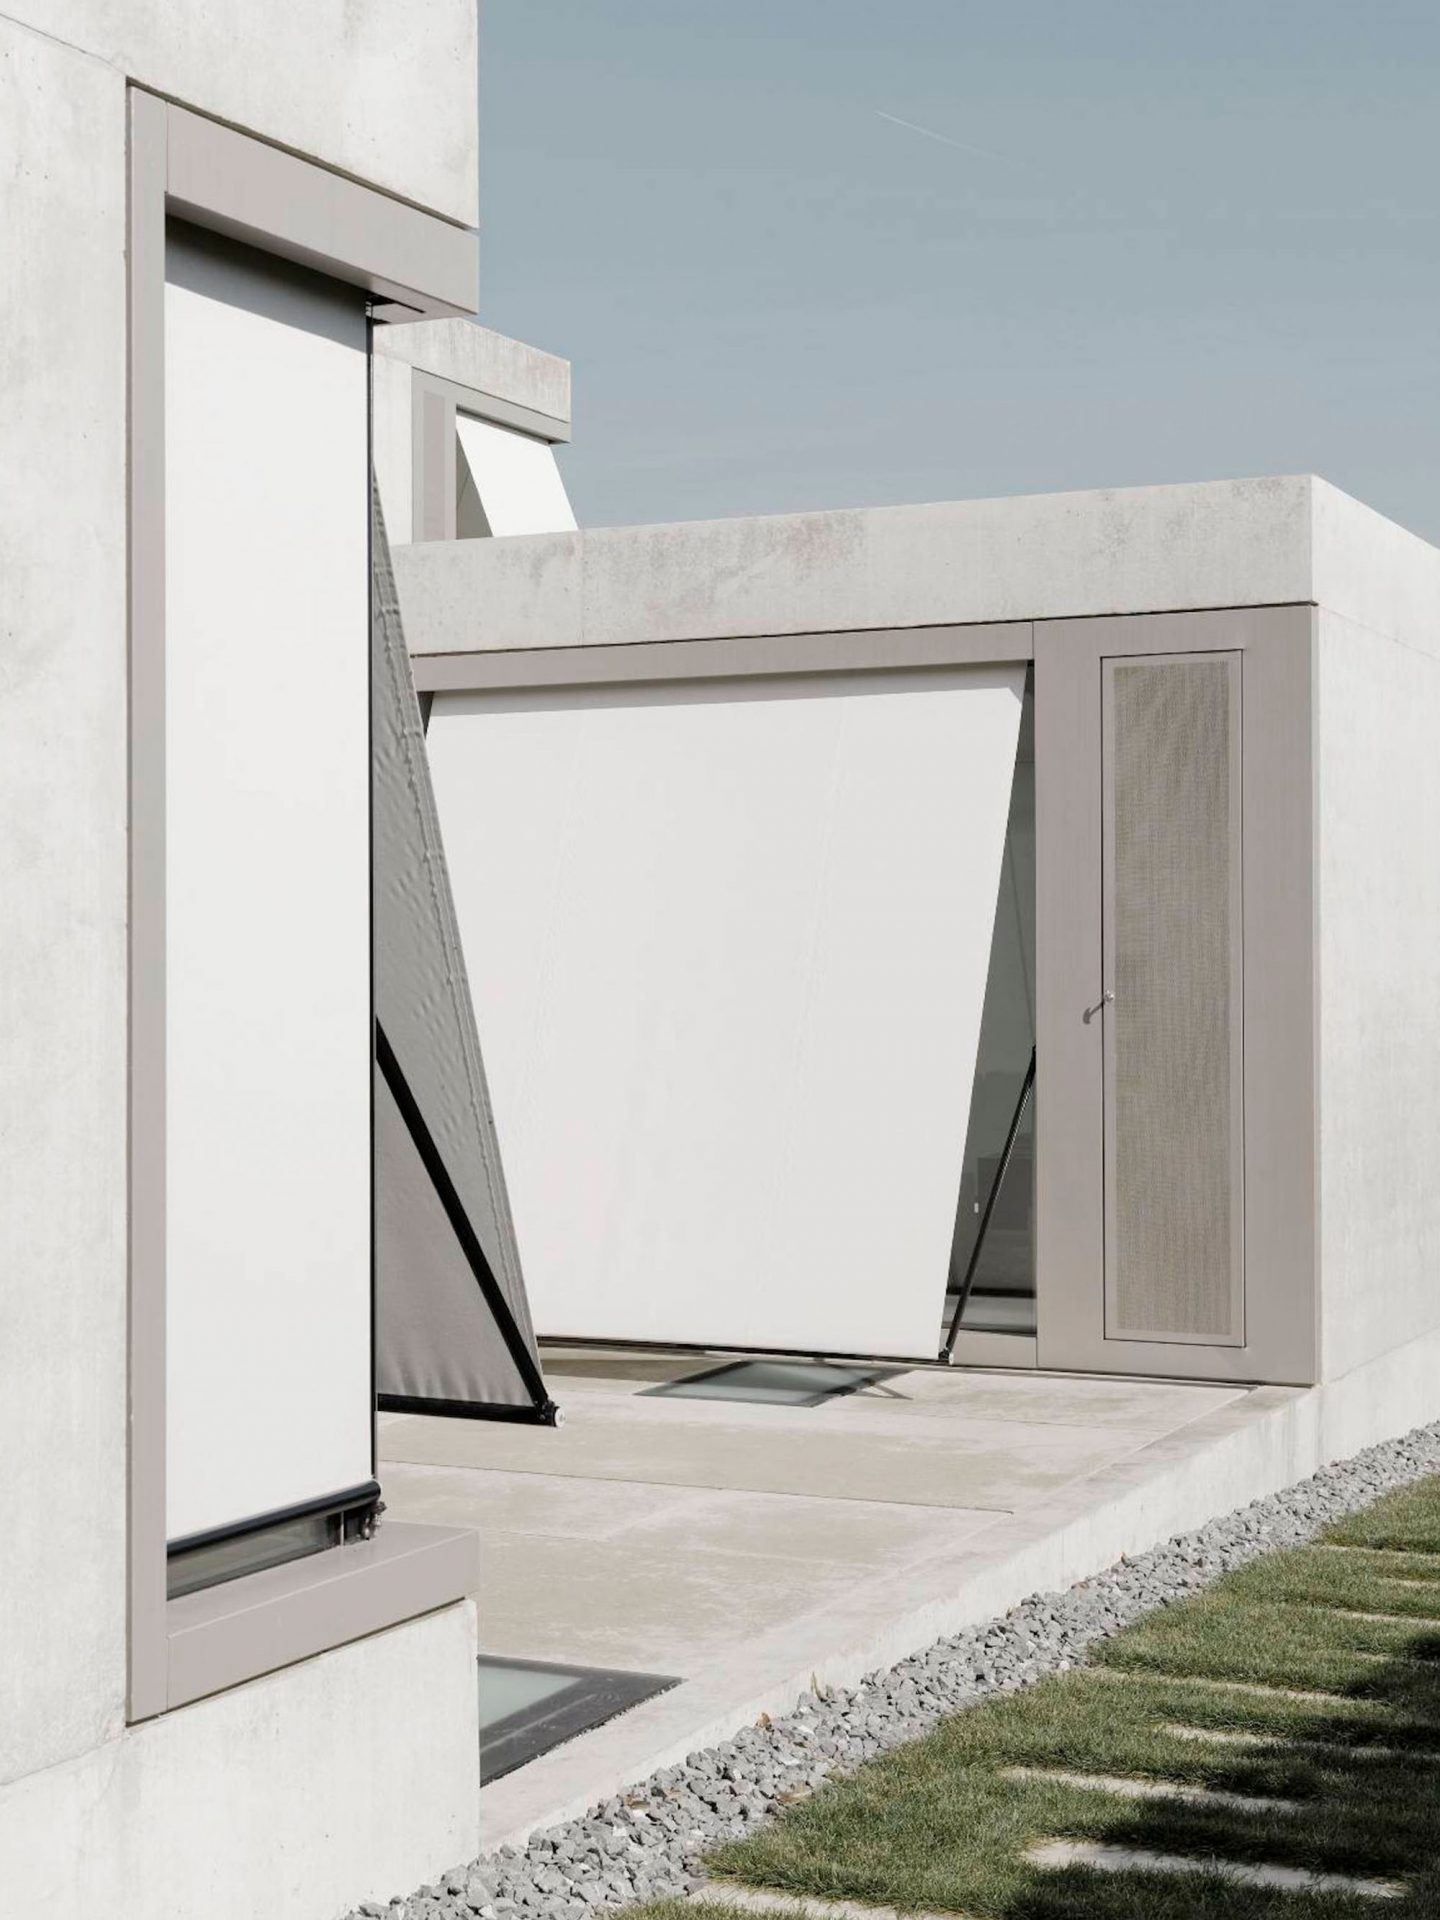 IGNANT-Architecture-Niklaus-Graber-Christoph-Steiger-Architects-Villa-M-011